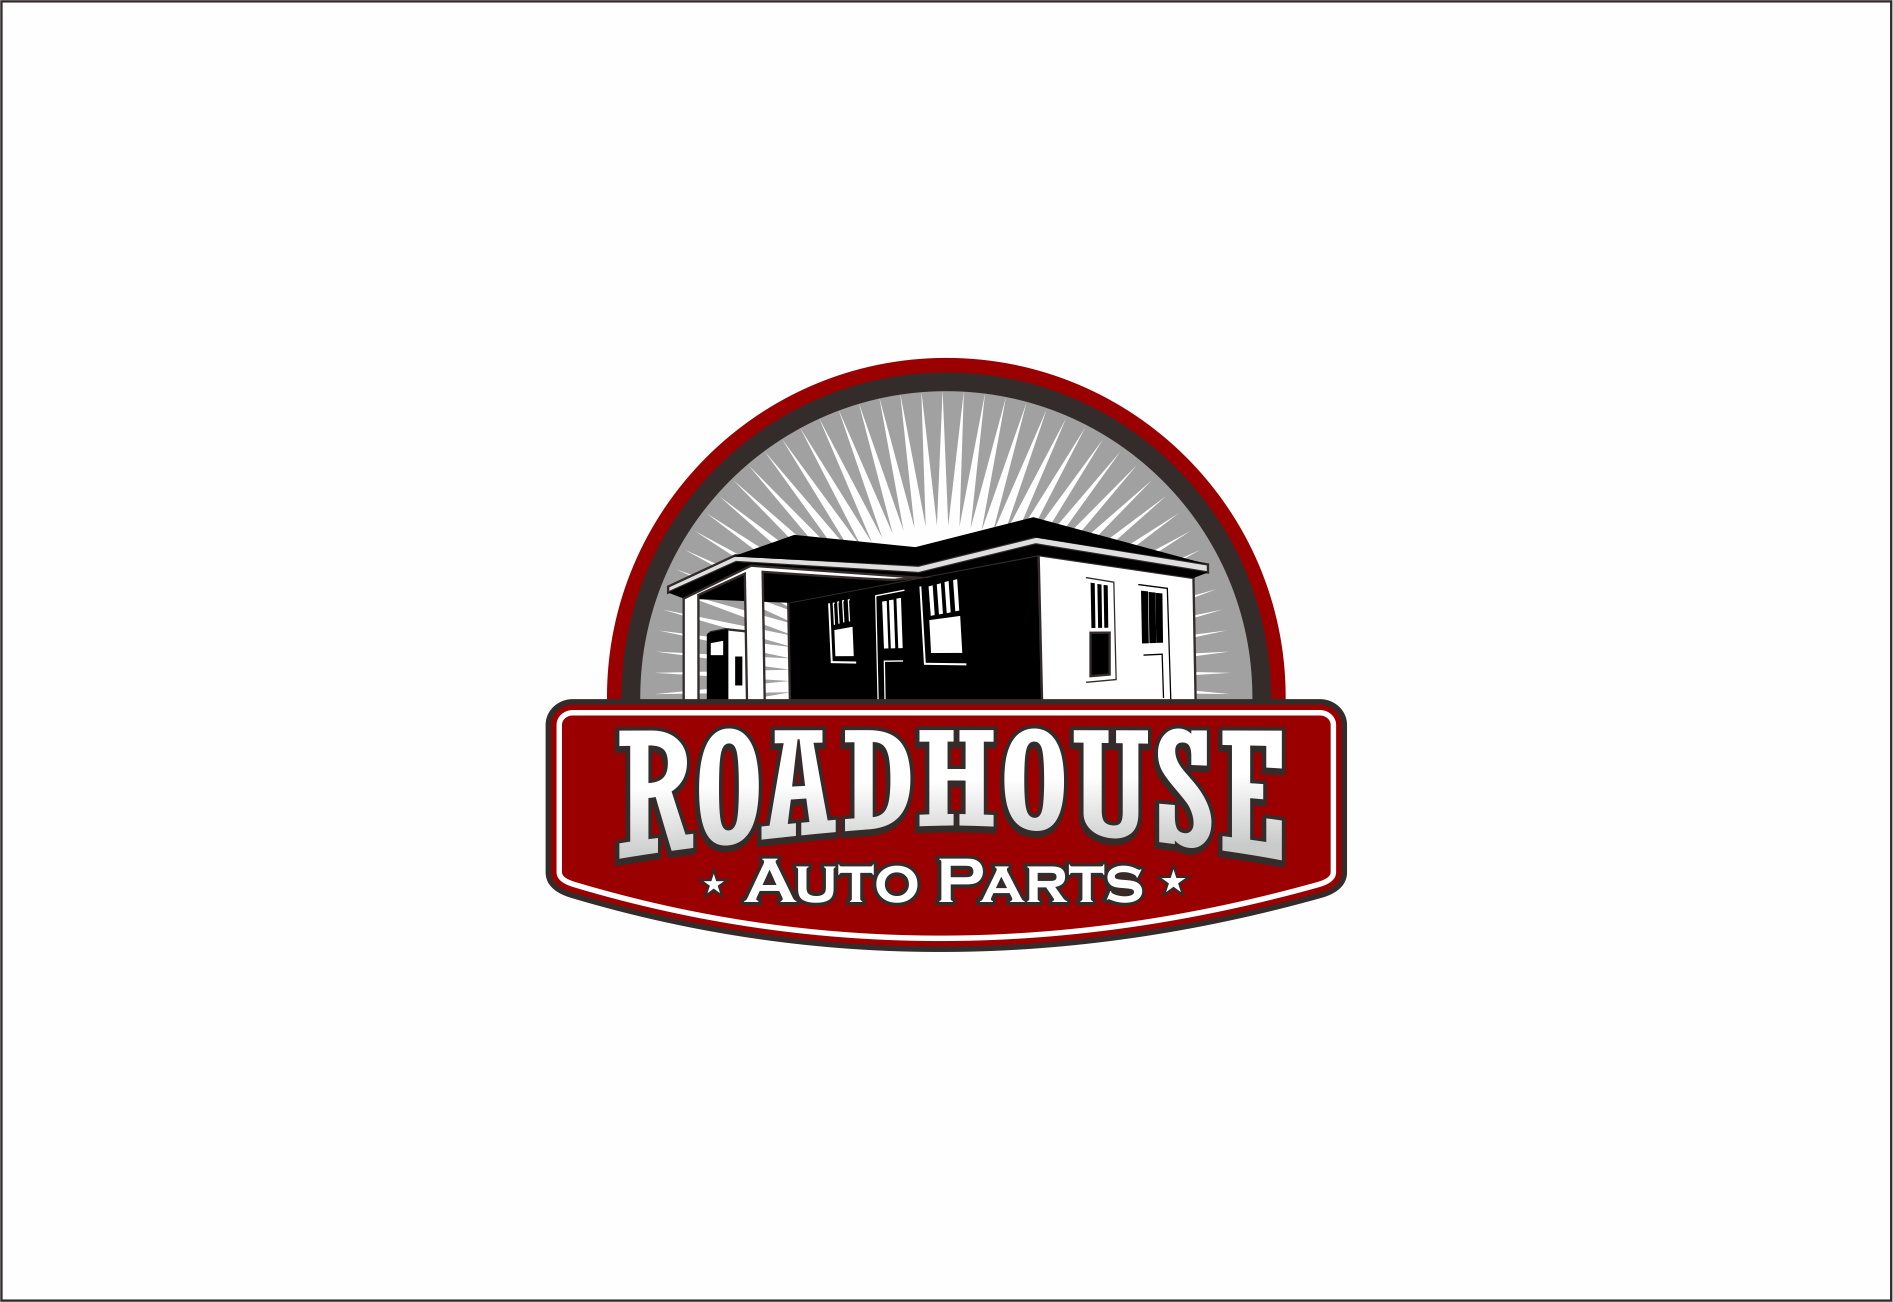 Dynamic logo wanted for Roadhouse Auto Parts